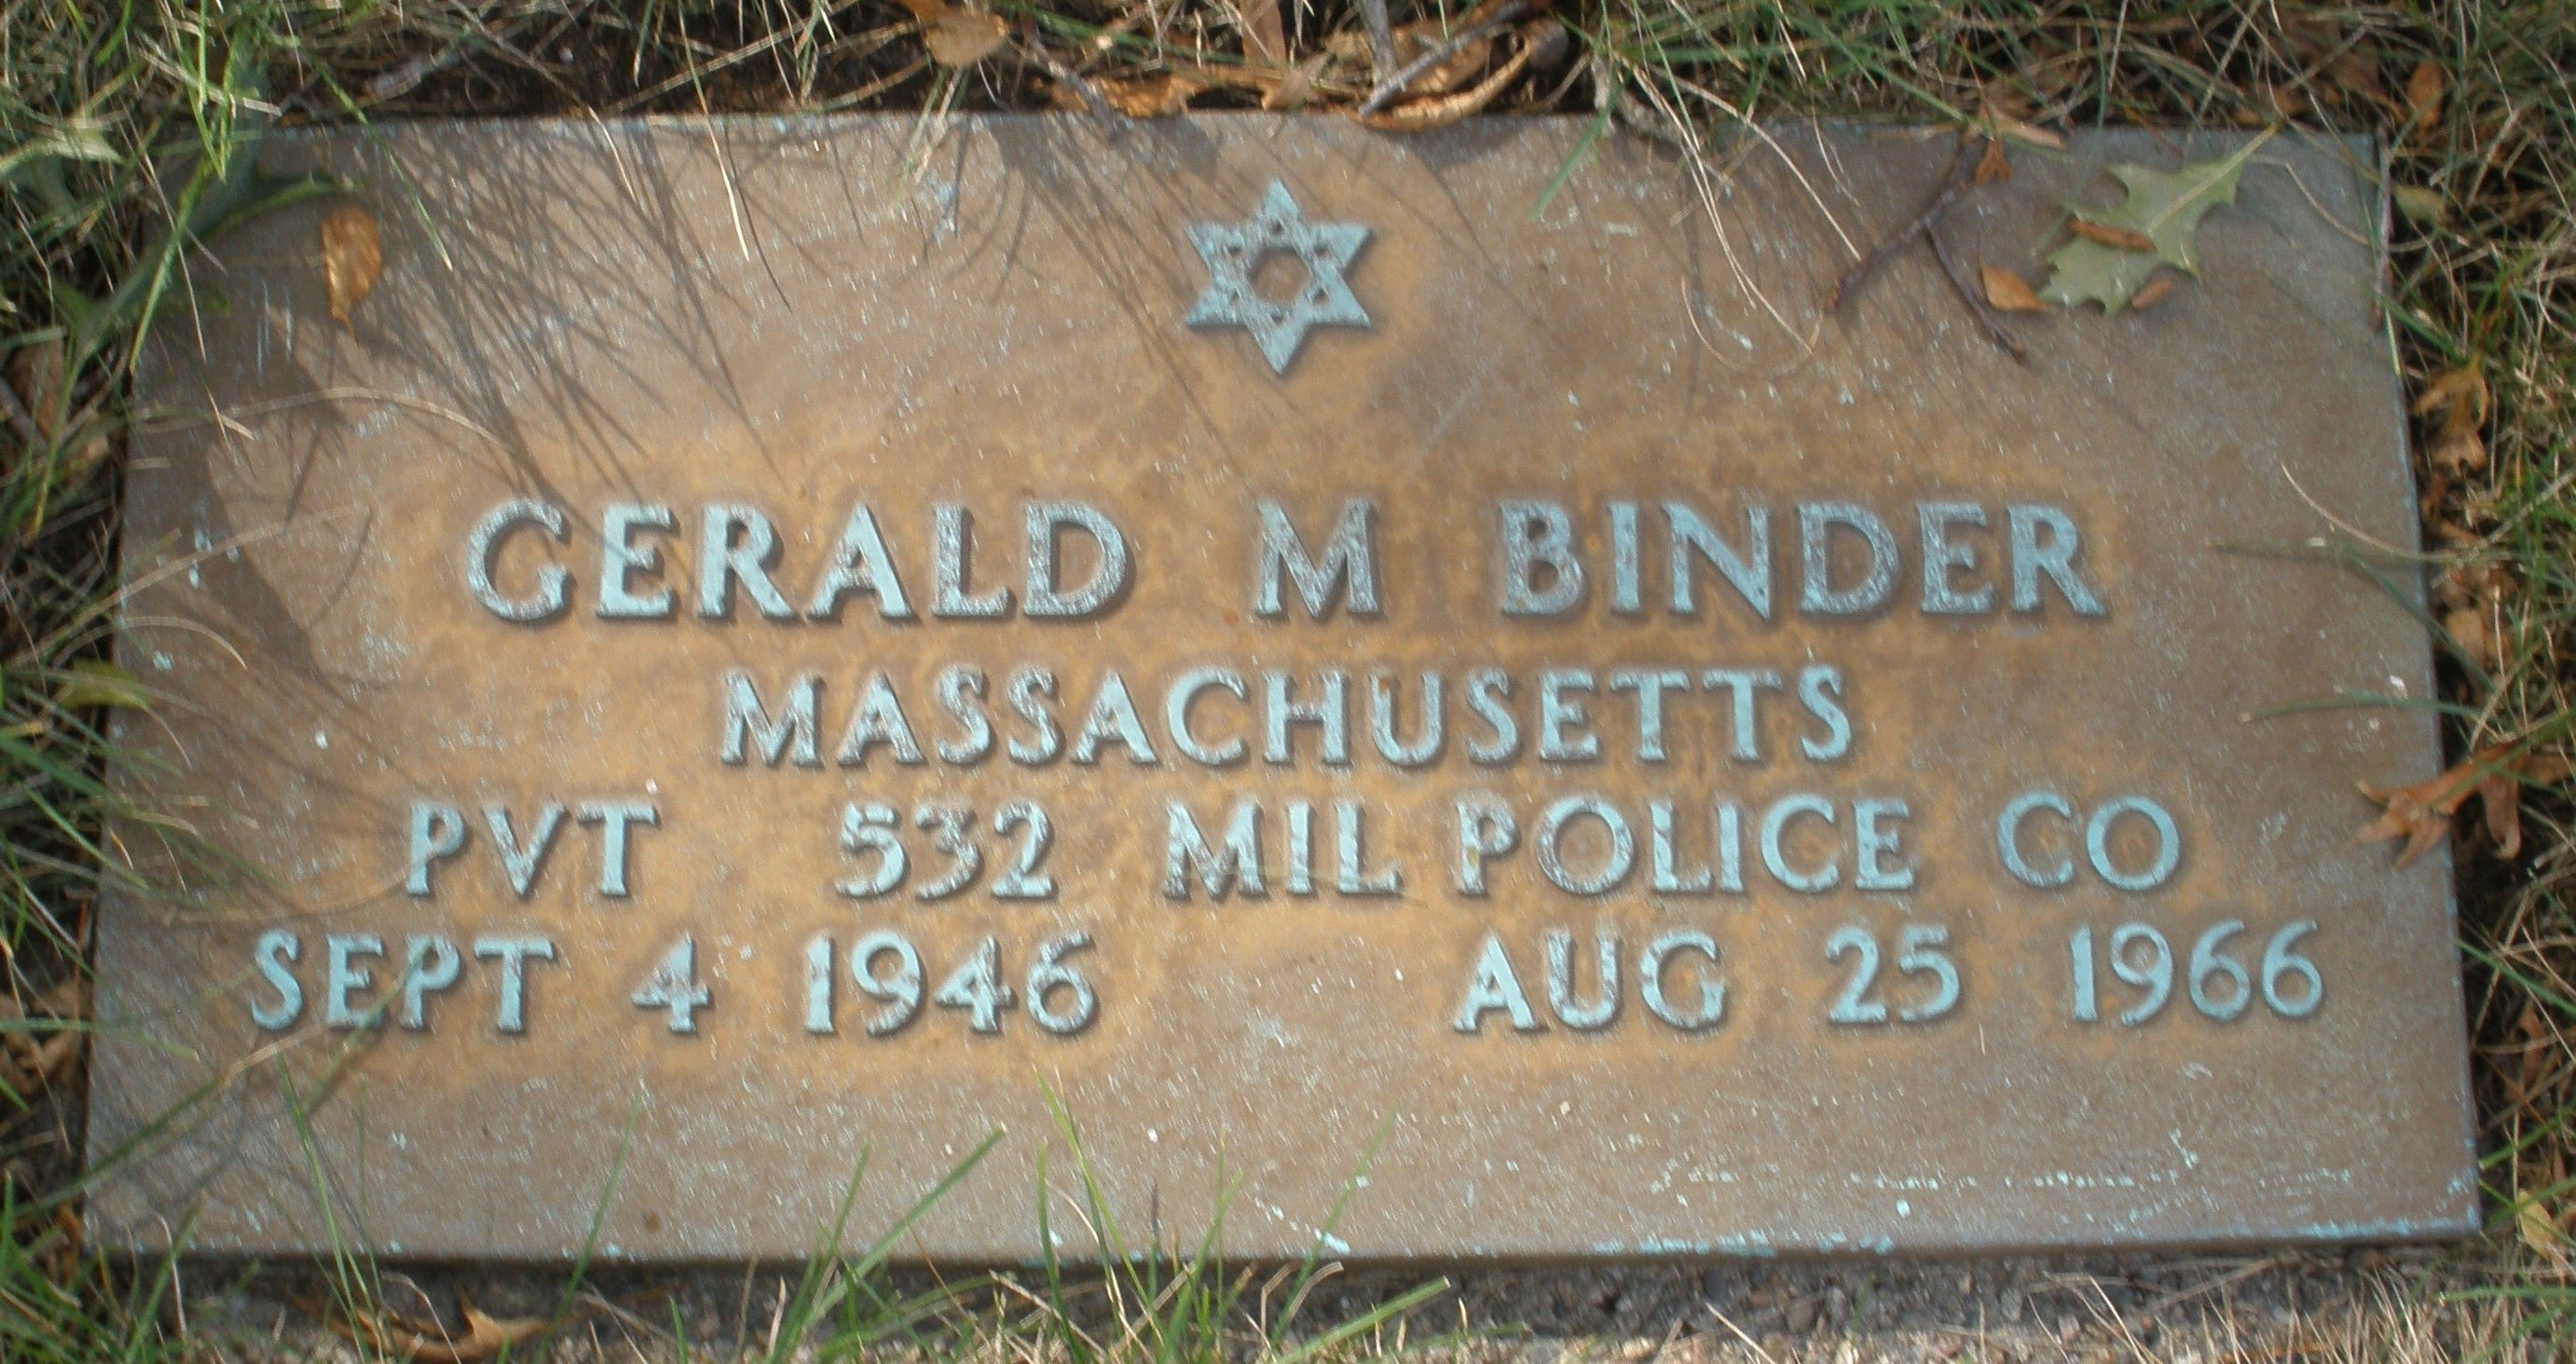 Private First Class Gerald Morton Binder | United States Army Military Police Corps, U.S. Government